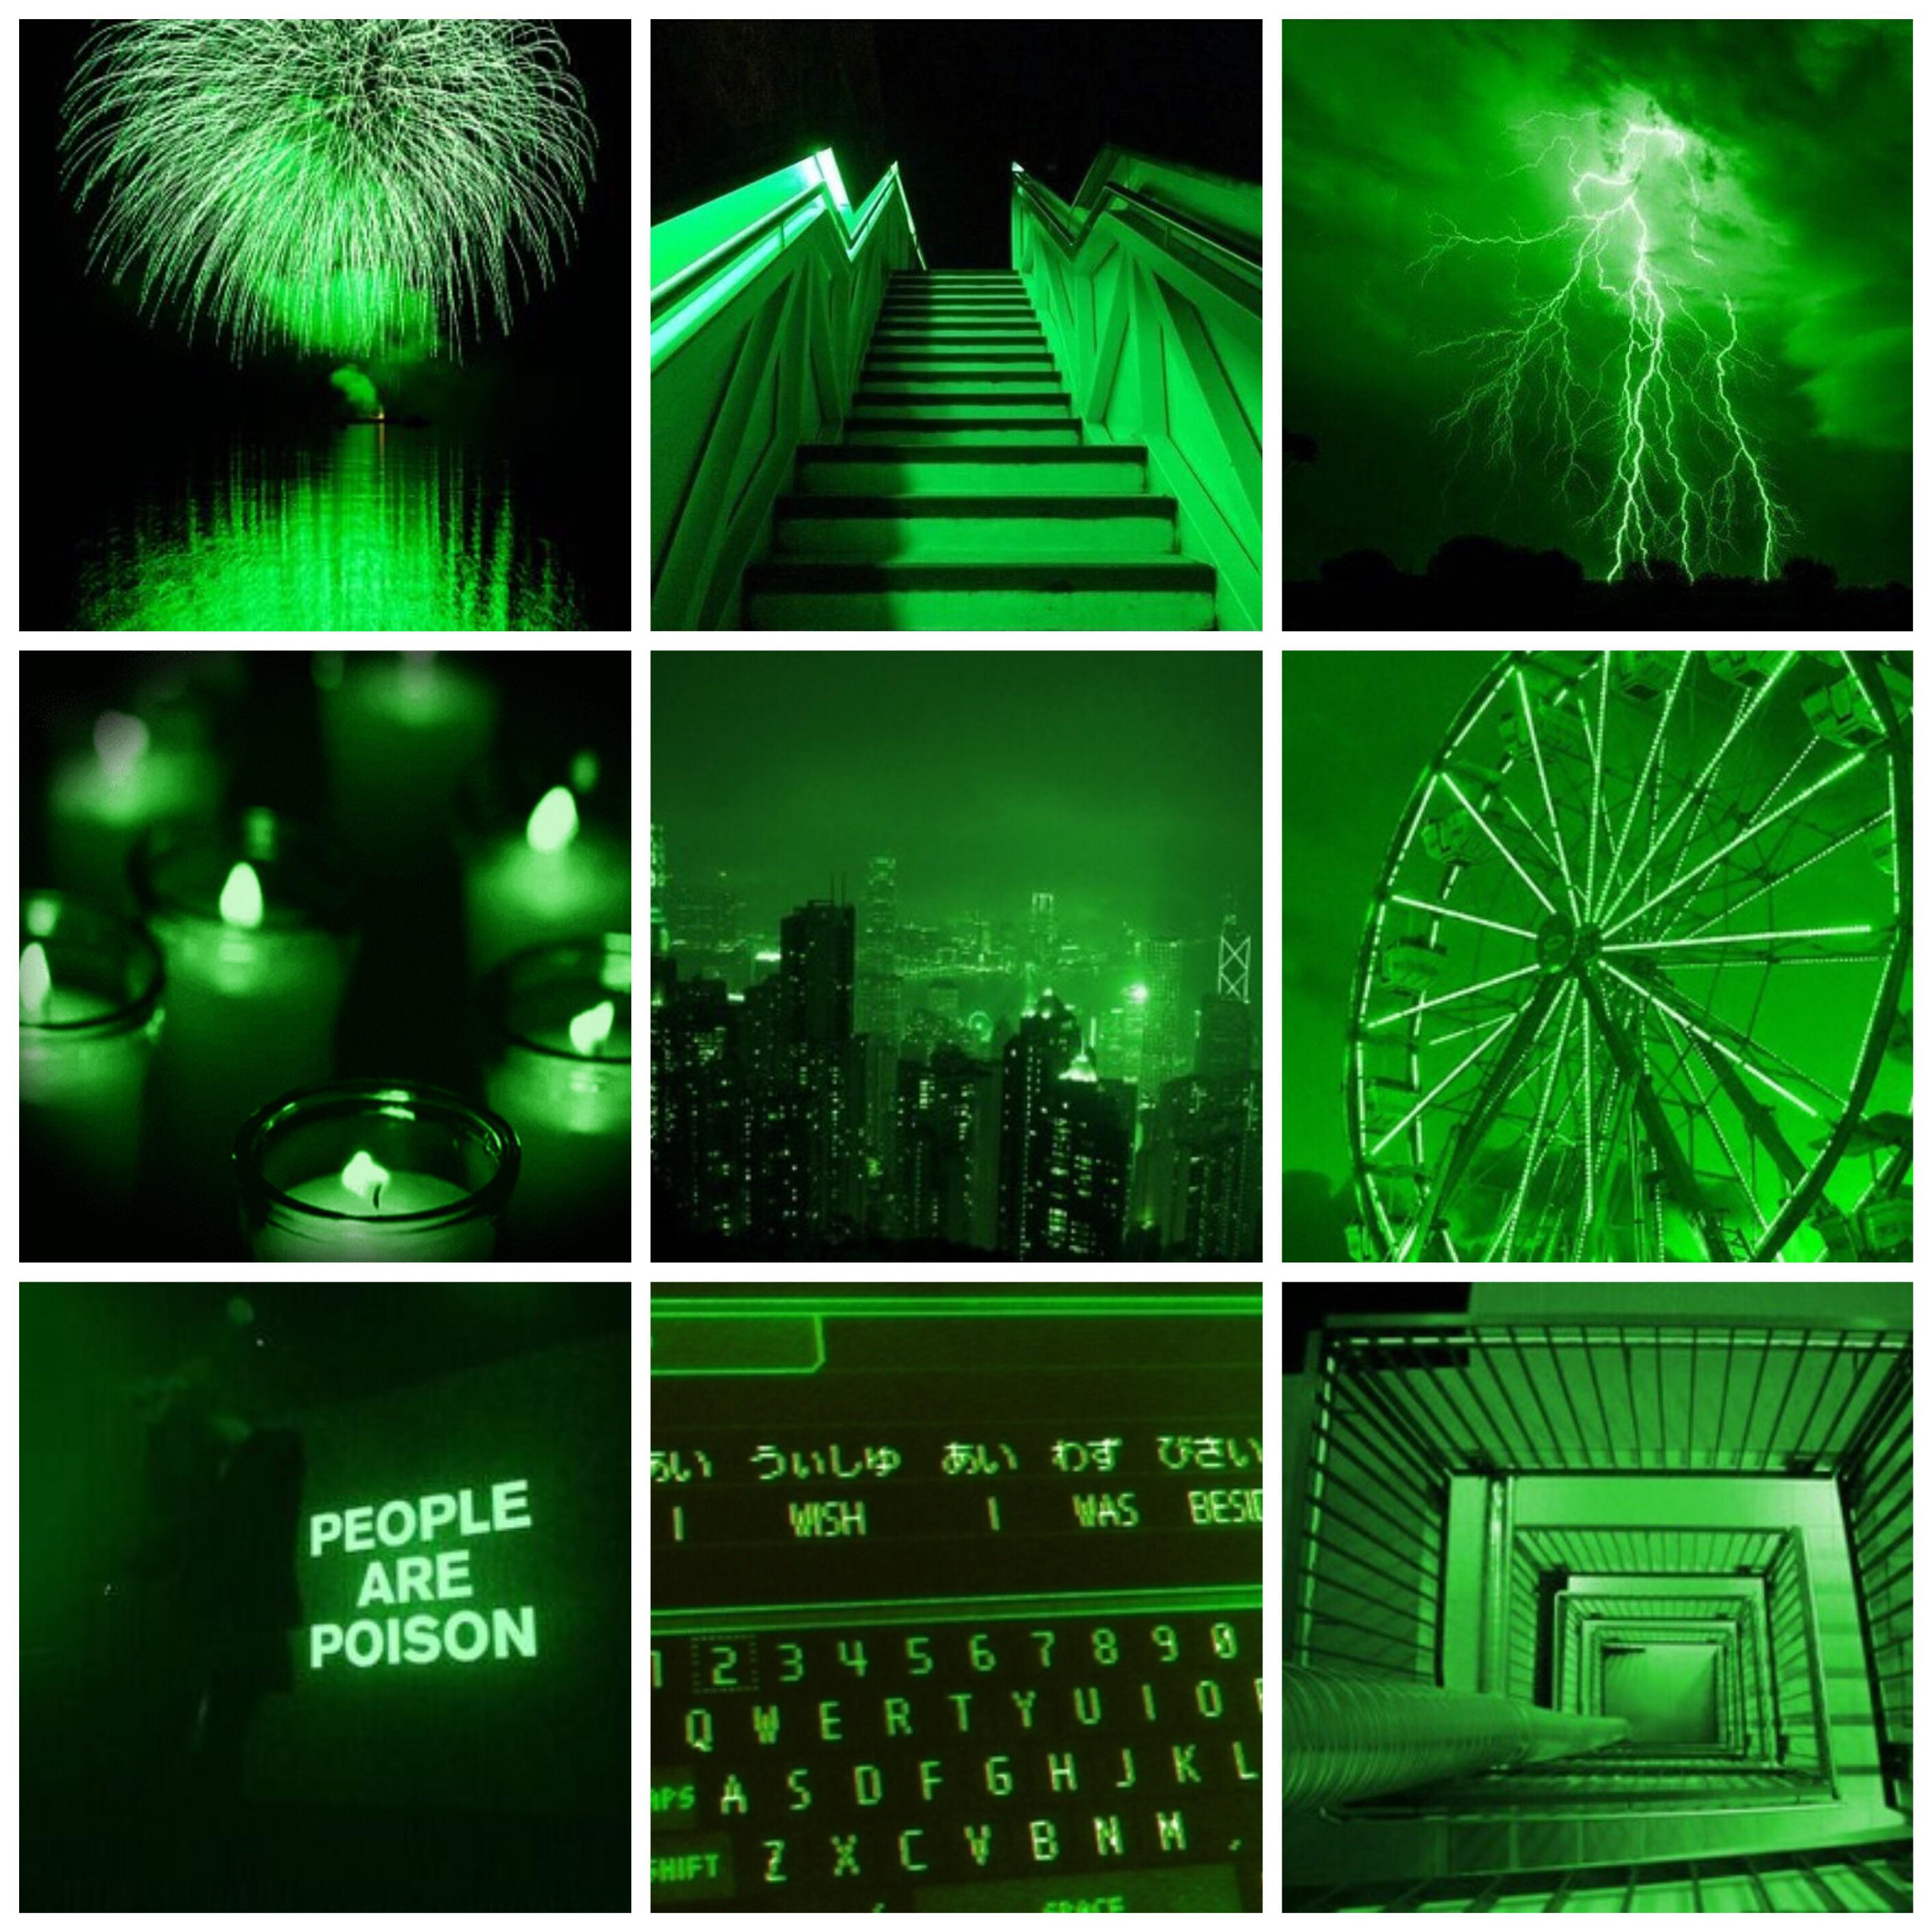 Green aesthetic wallpapers collage: AestheticWallpapers